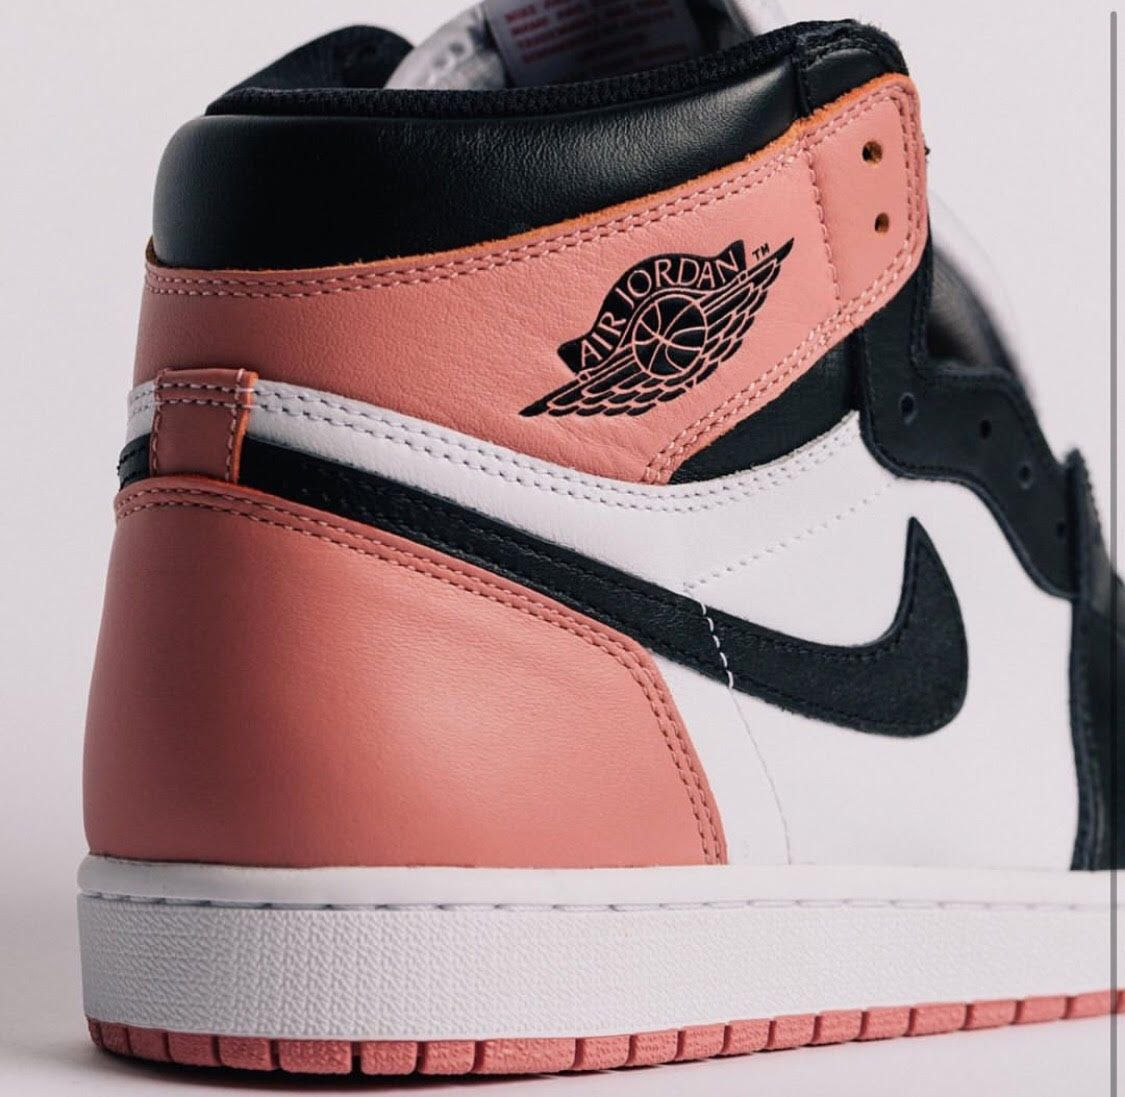 2c12114d5efd18 More Images Of The Upcoming Air Jordan 1 Retro High OG NRG Rust Pink